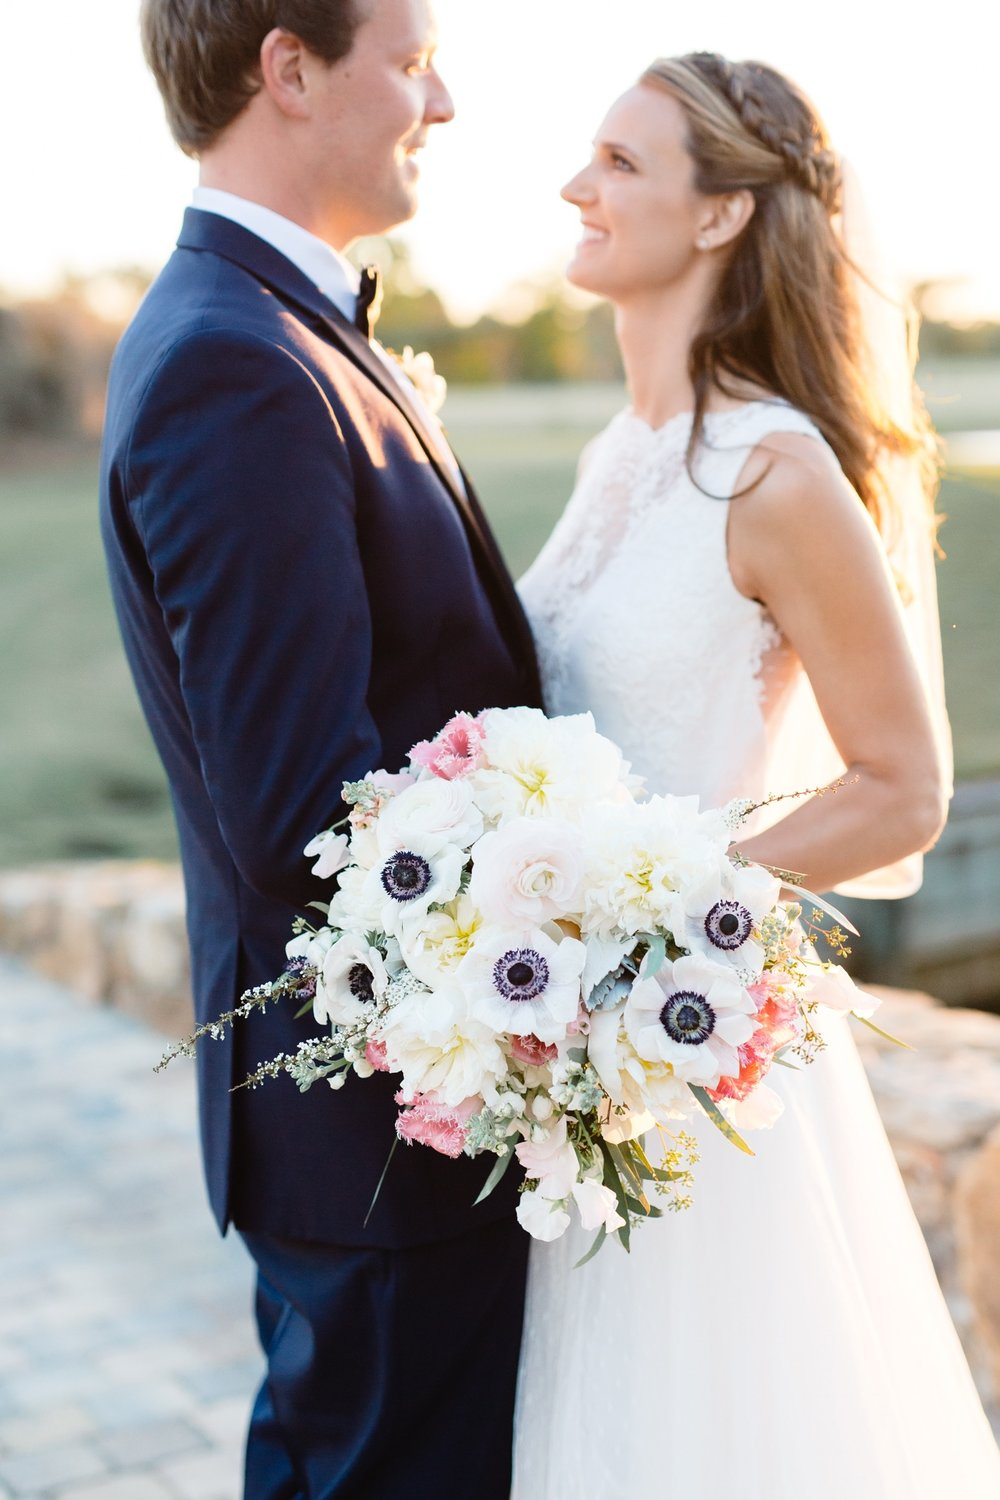 Winter Park Wedding at Interlachen Country Club